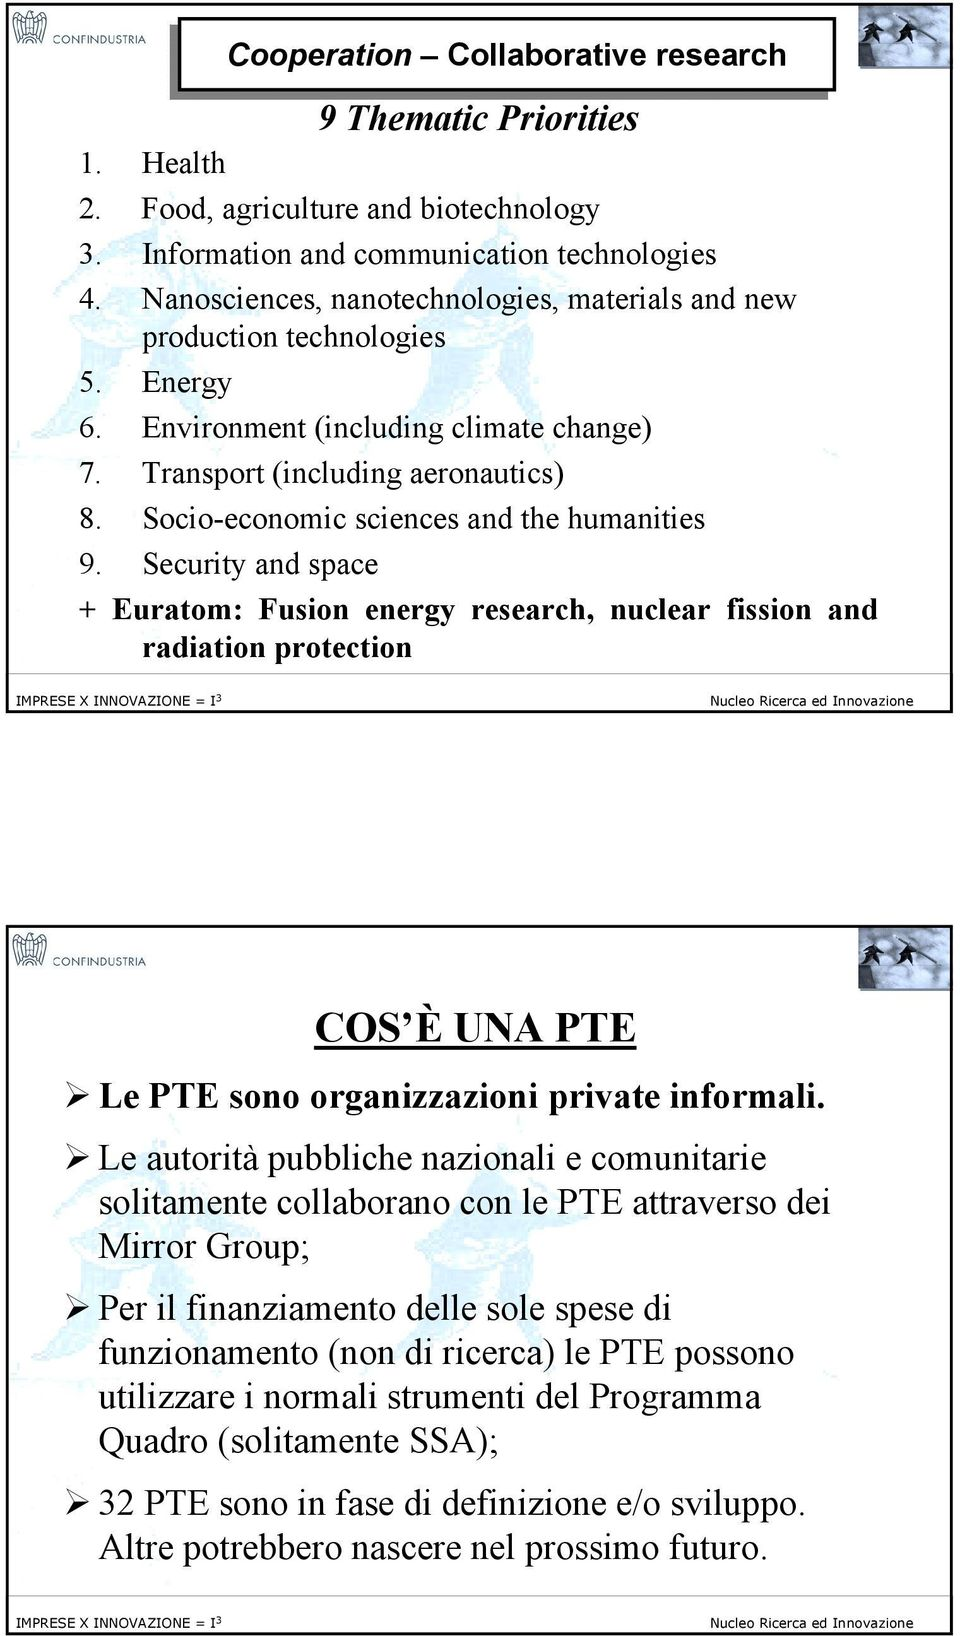 Socio-economic sciences and the humanities 9. Security and space + Euratom: Fusion energy research, nuclear fission and radiation protection 10 COS È UNA PTE!